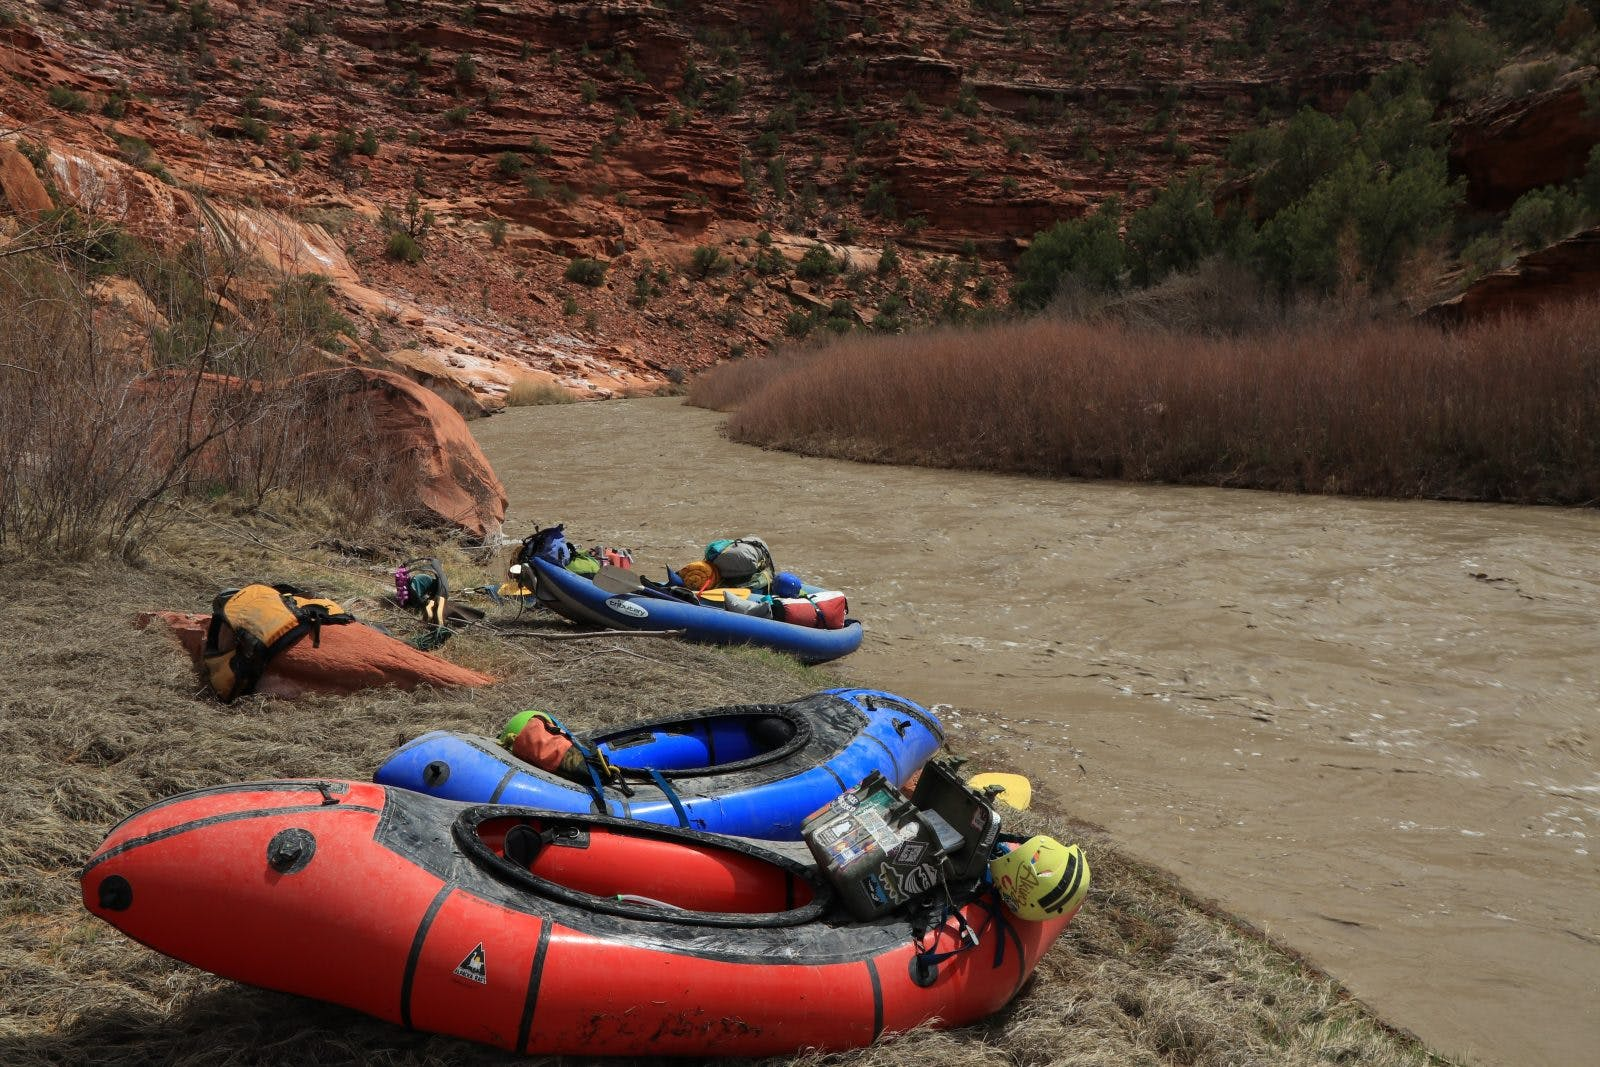 """""""The first weekend of April produced close to 400 cfs, more than enough water to take our fleet of packrafts into the canyon""""- Rica Fulton. Photo by Cody Perry"""